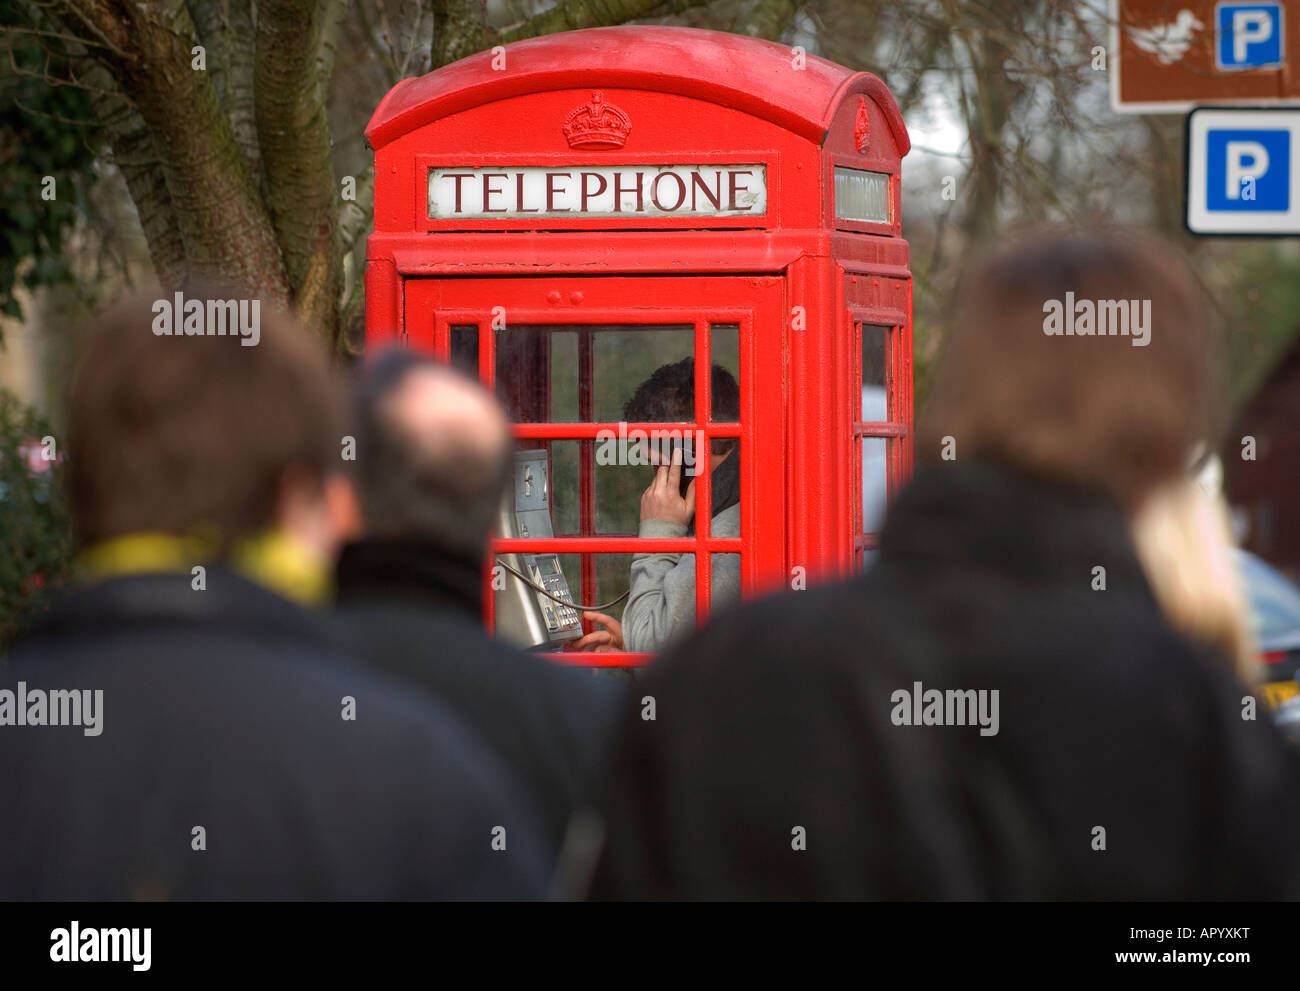 A young man using a red telephone box in a busy urban street. Picture by Jim Holden. Stock Photo